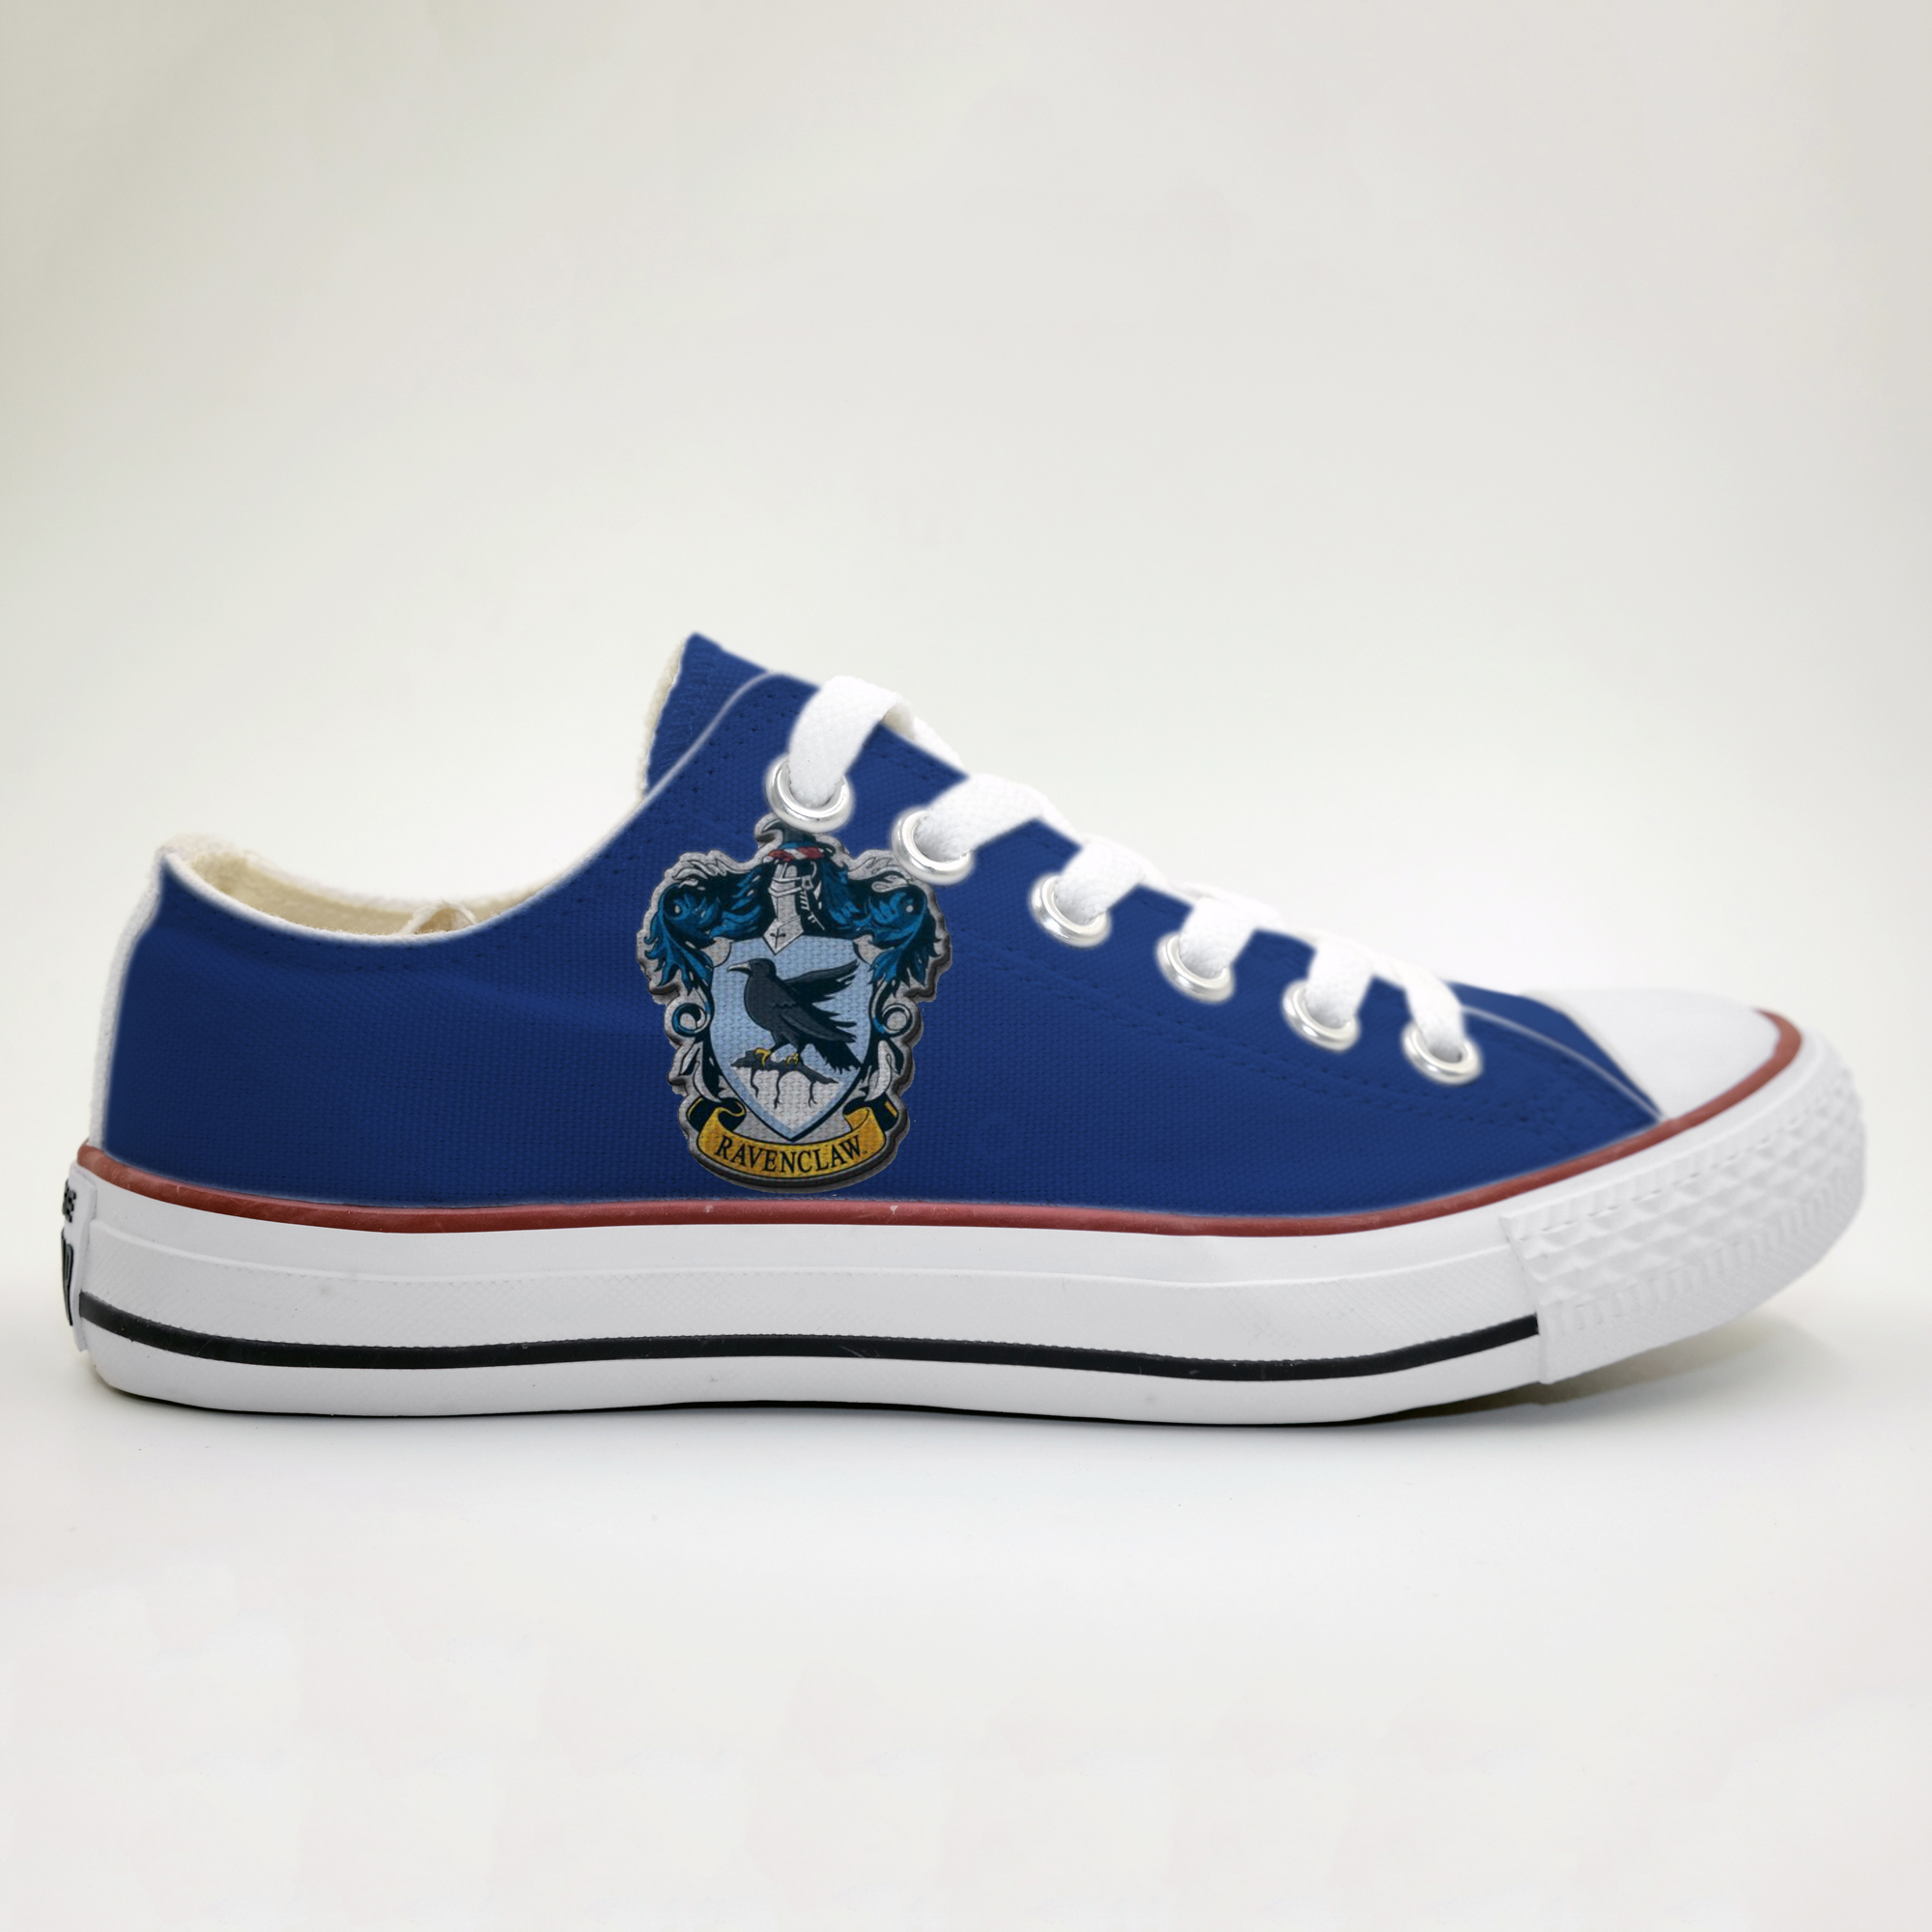 57f6b2f3c611 NEW Harry Potter Ravenclaw Hogwarts Custom Shoes Gryffindor Slytherin  Hufflepuff gift for him gift for her ...